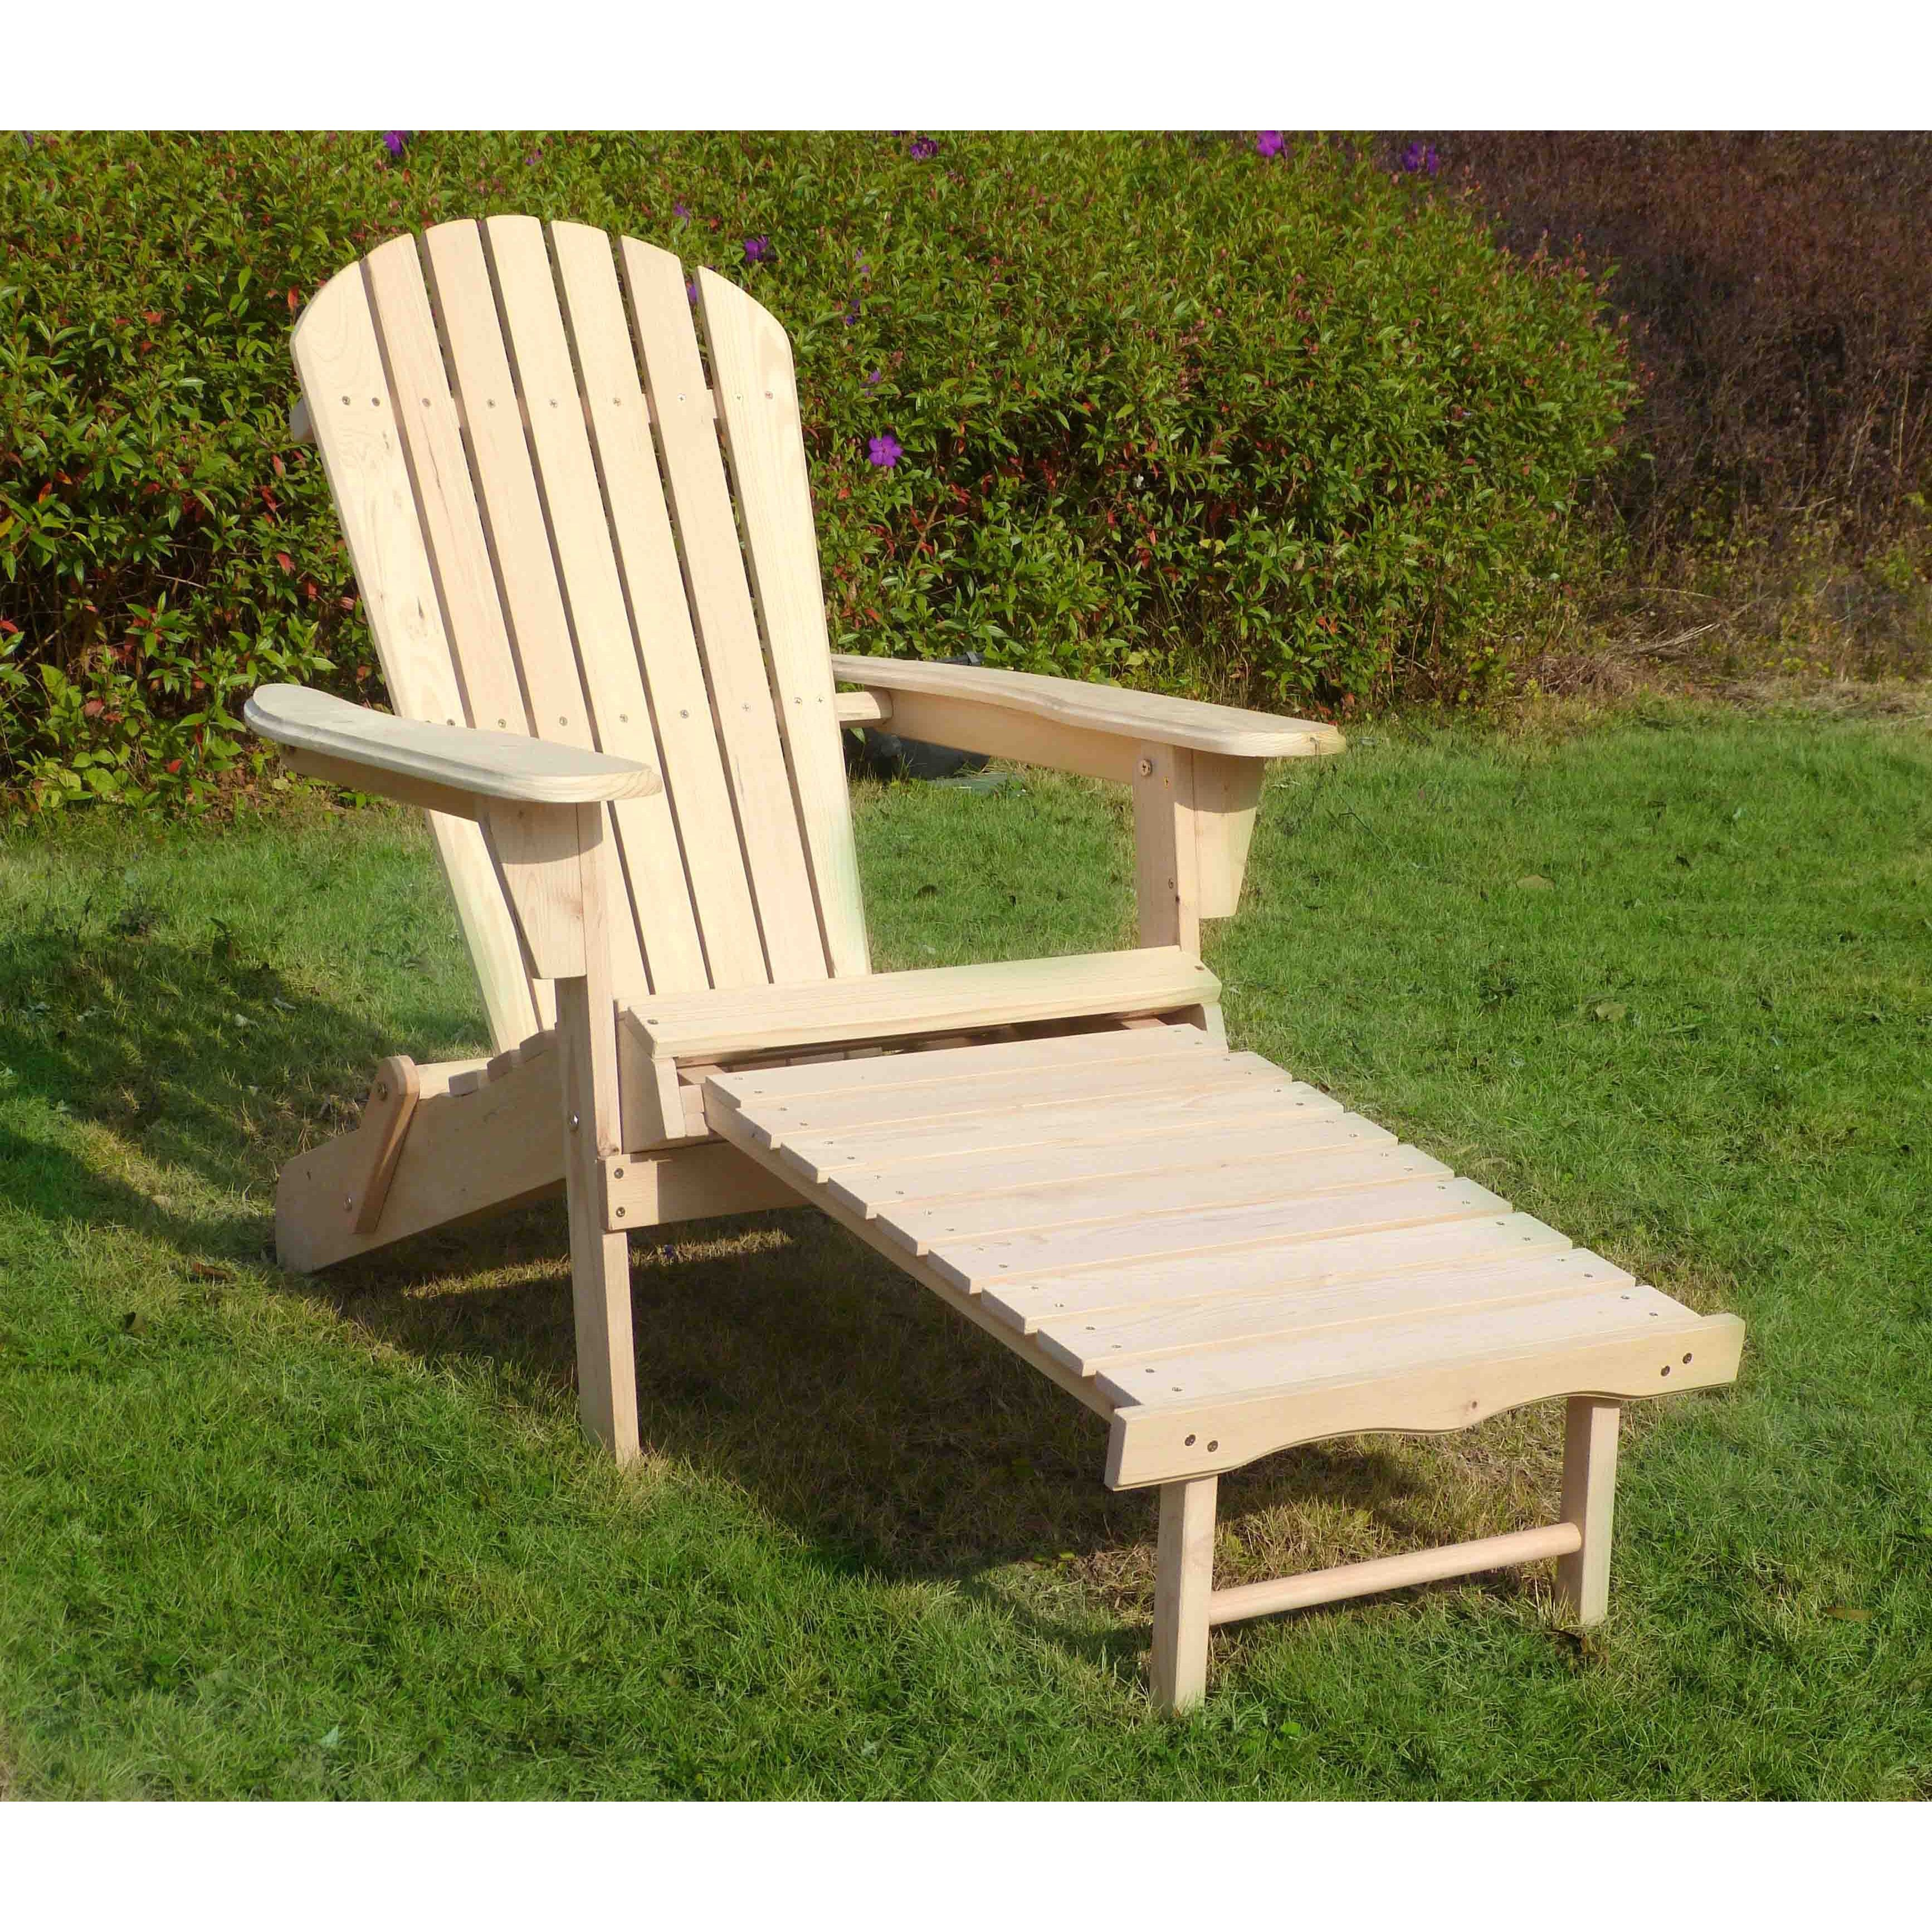 Merry Products Adirondack Chair Kit with Pullout Ottoman & Shop Merry Products Adirondack Chair Kit with Pullout Ottoman - Free ...